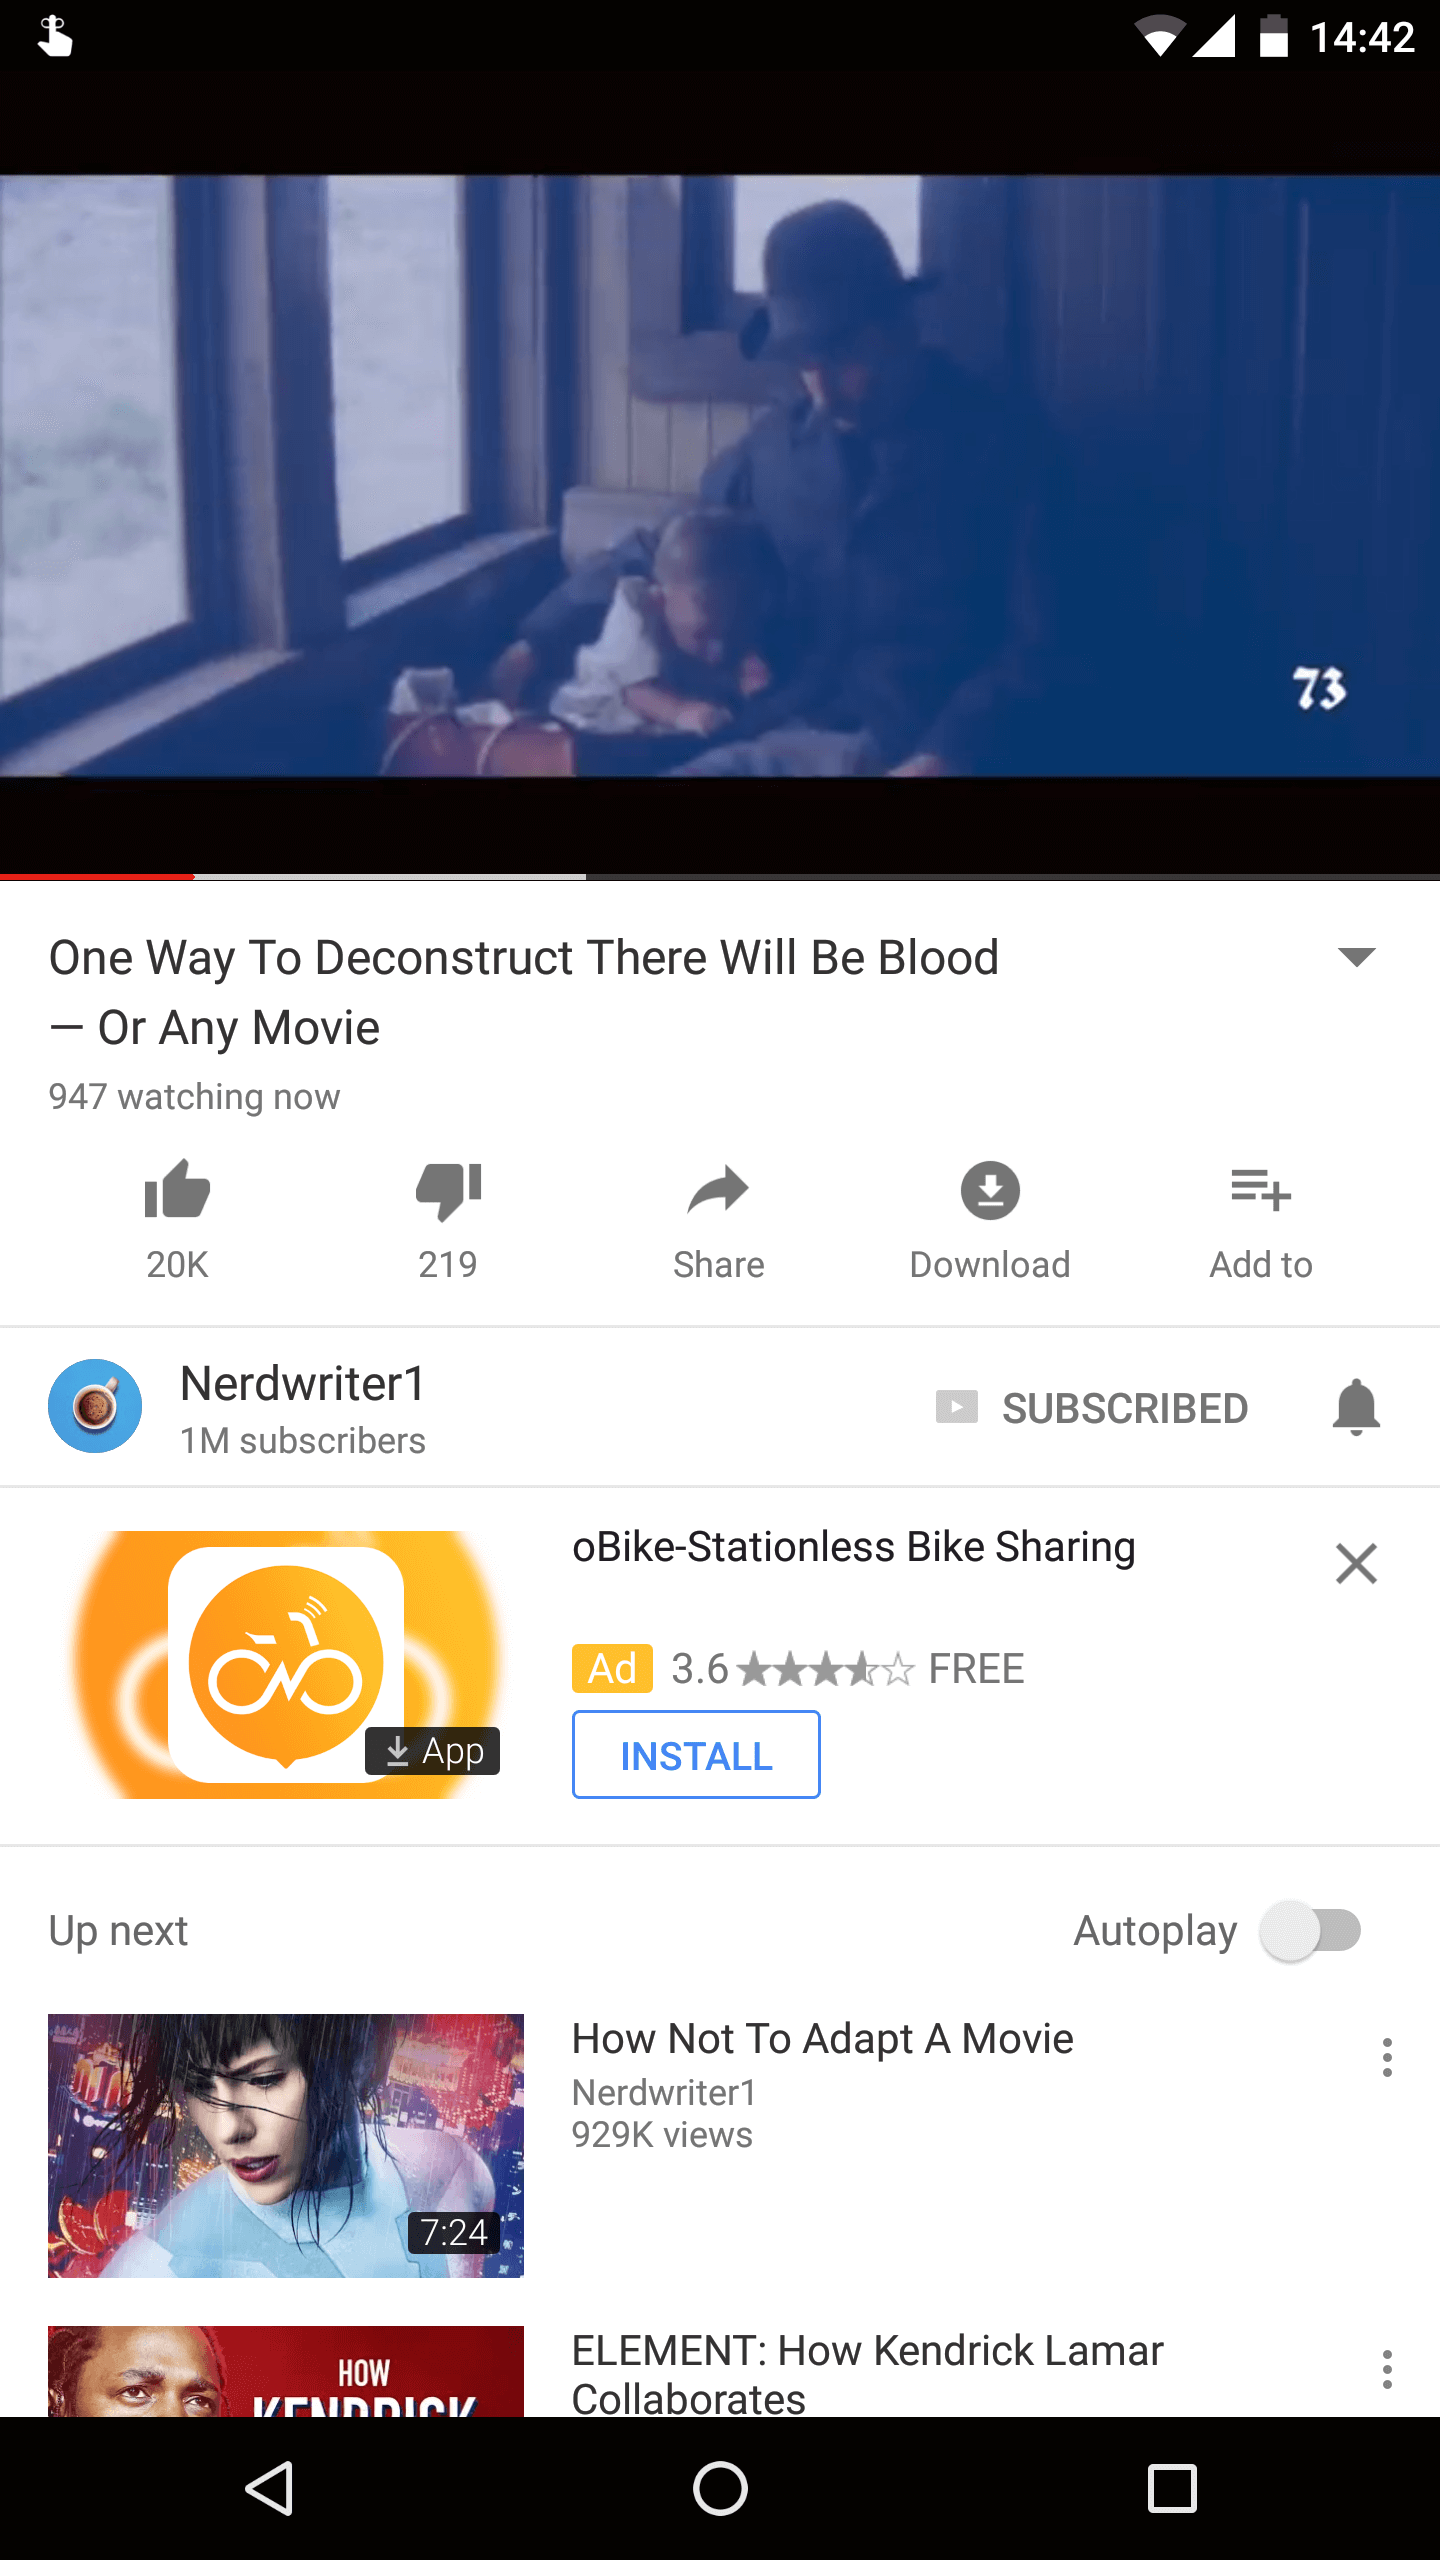 YouTube Android Live Watch Count Android Police 1